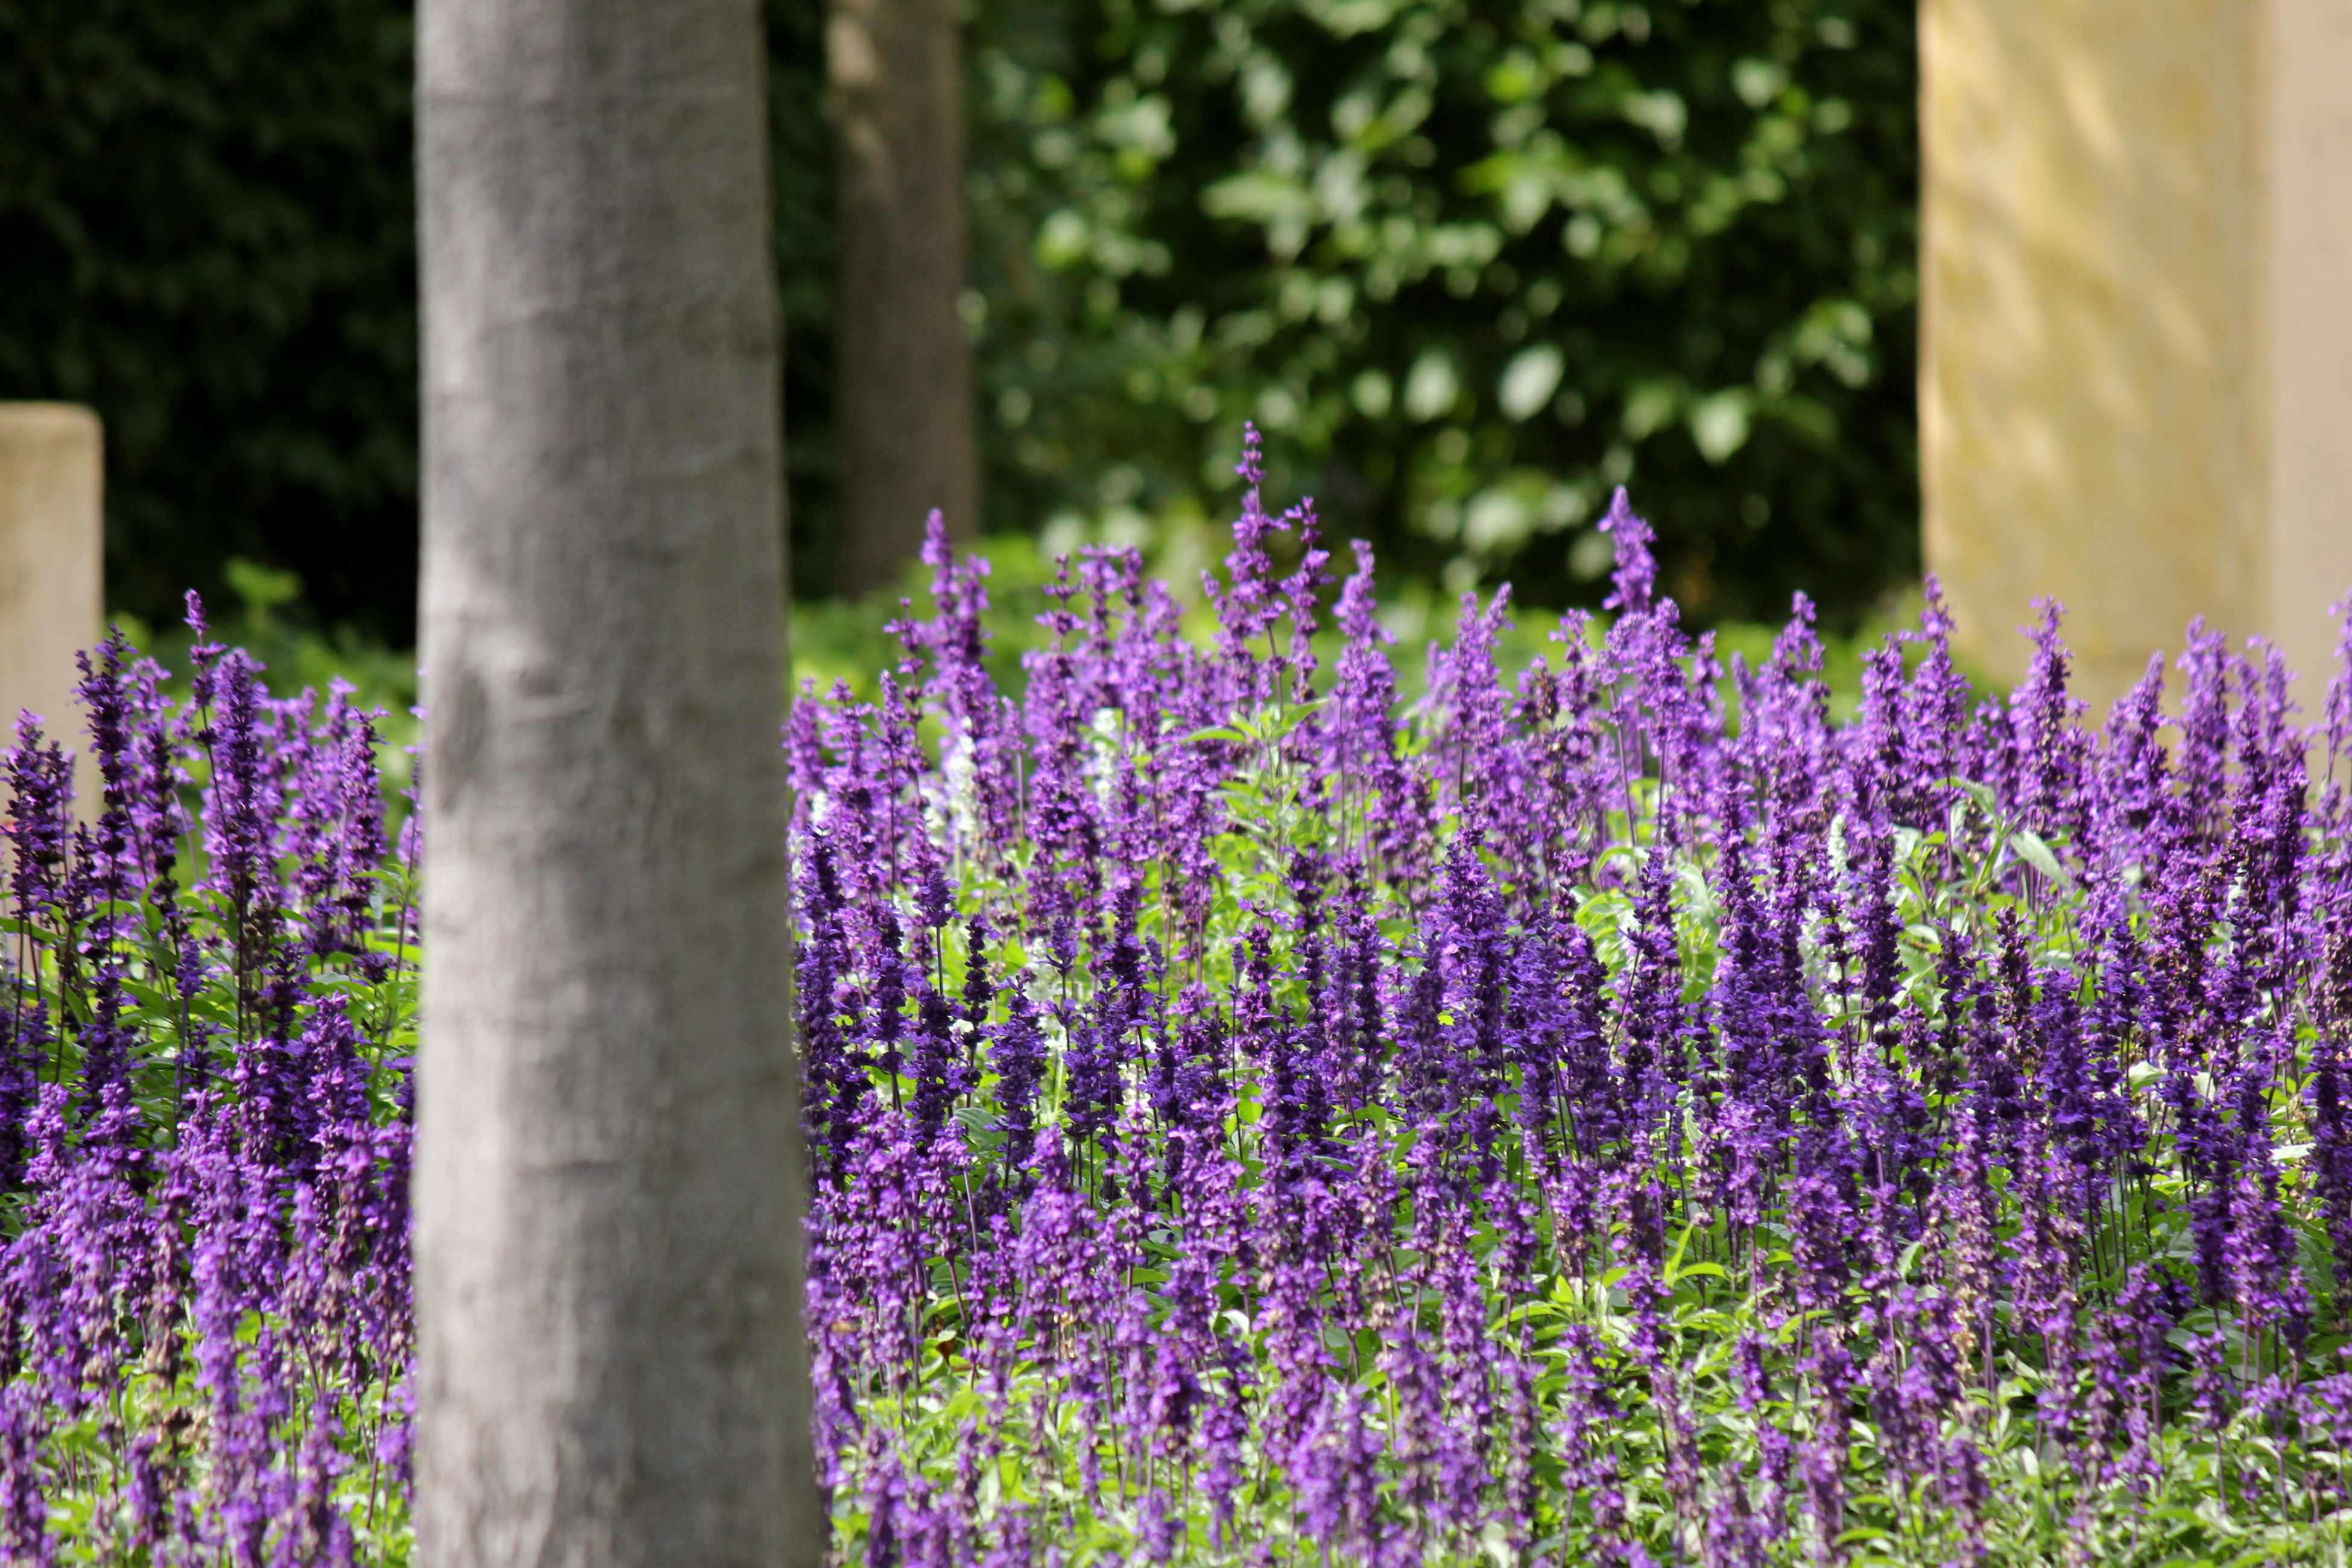 flower, purple, nature, fragility, beauty in nature, growth, freshness, plant, day, no people, close-up, outdoors, blooming, flower head, lavender colored, lavender